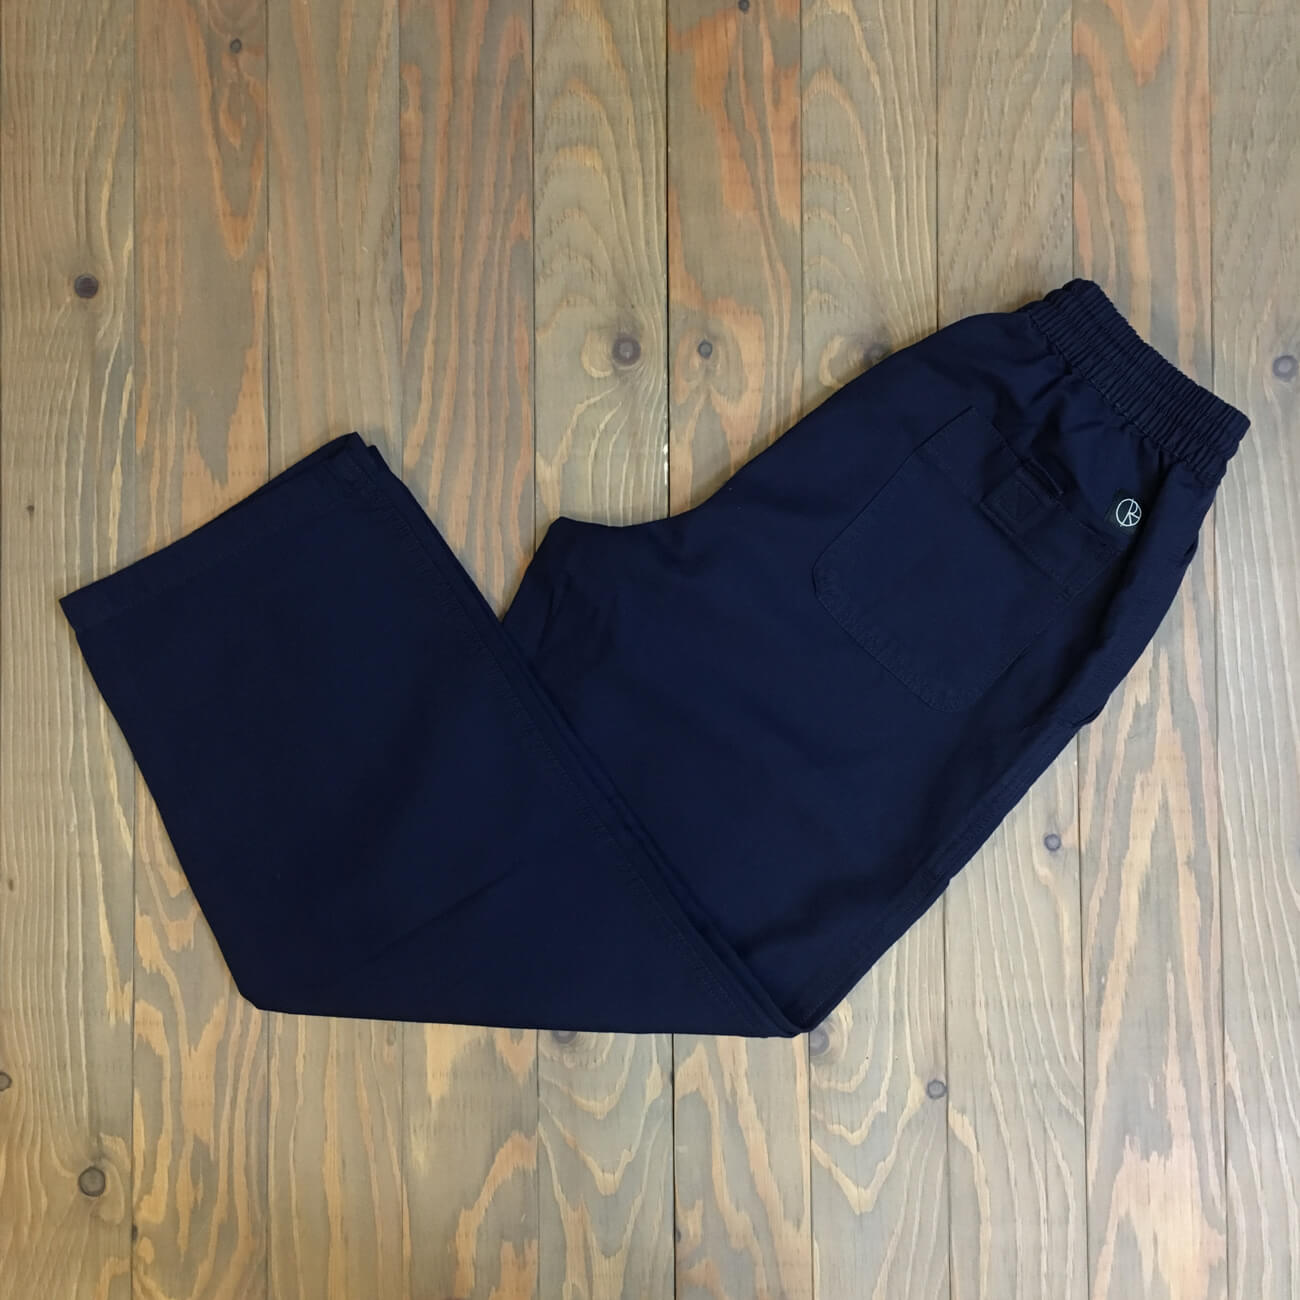 POLAR KARATE PANTS NAVY